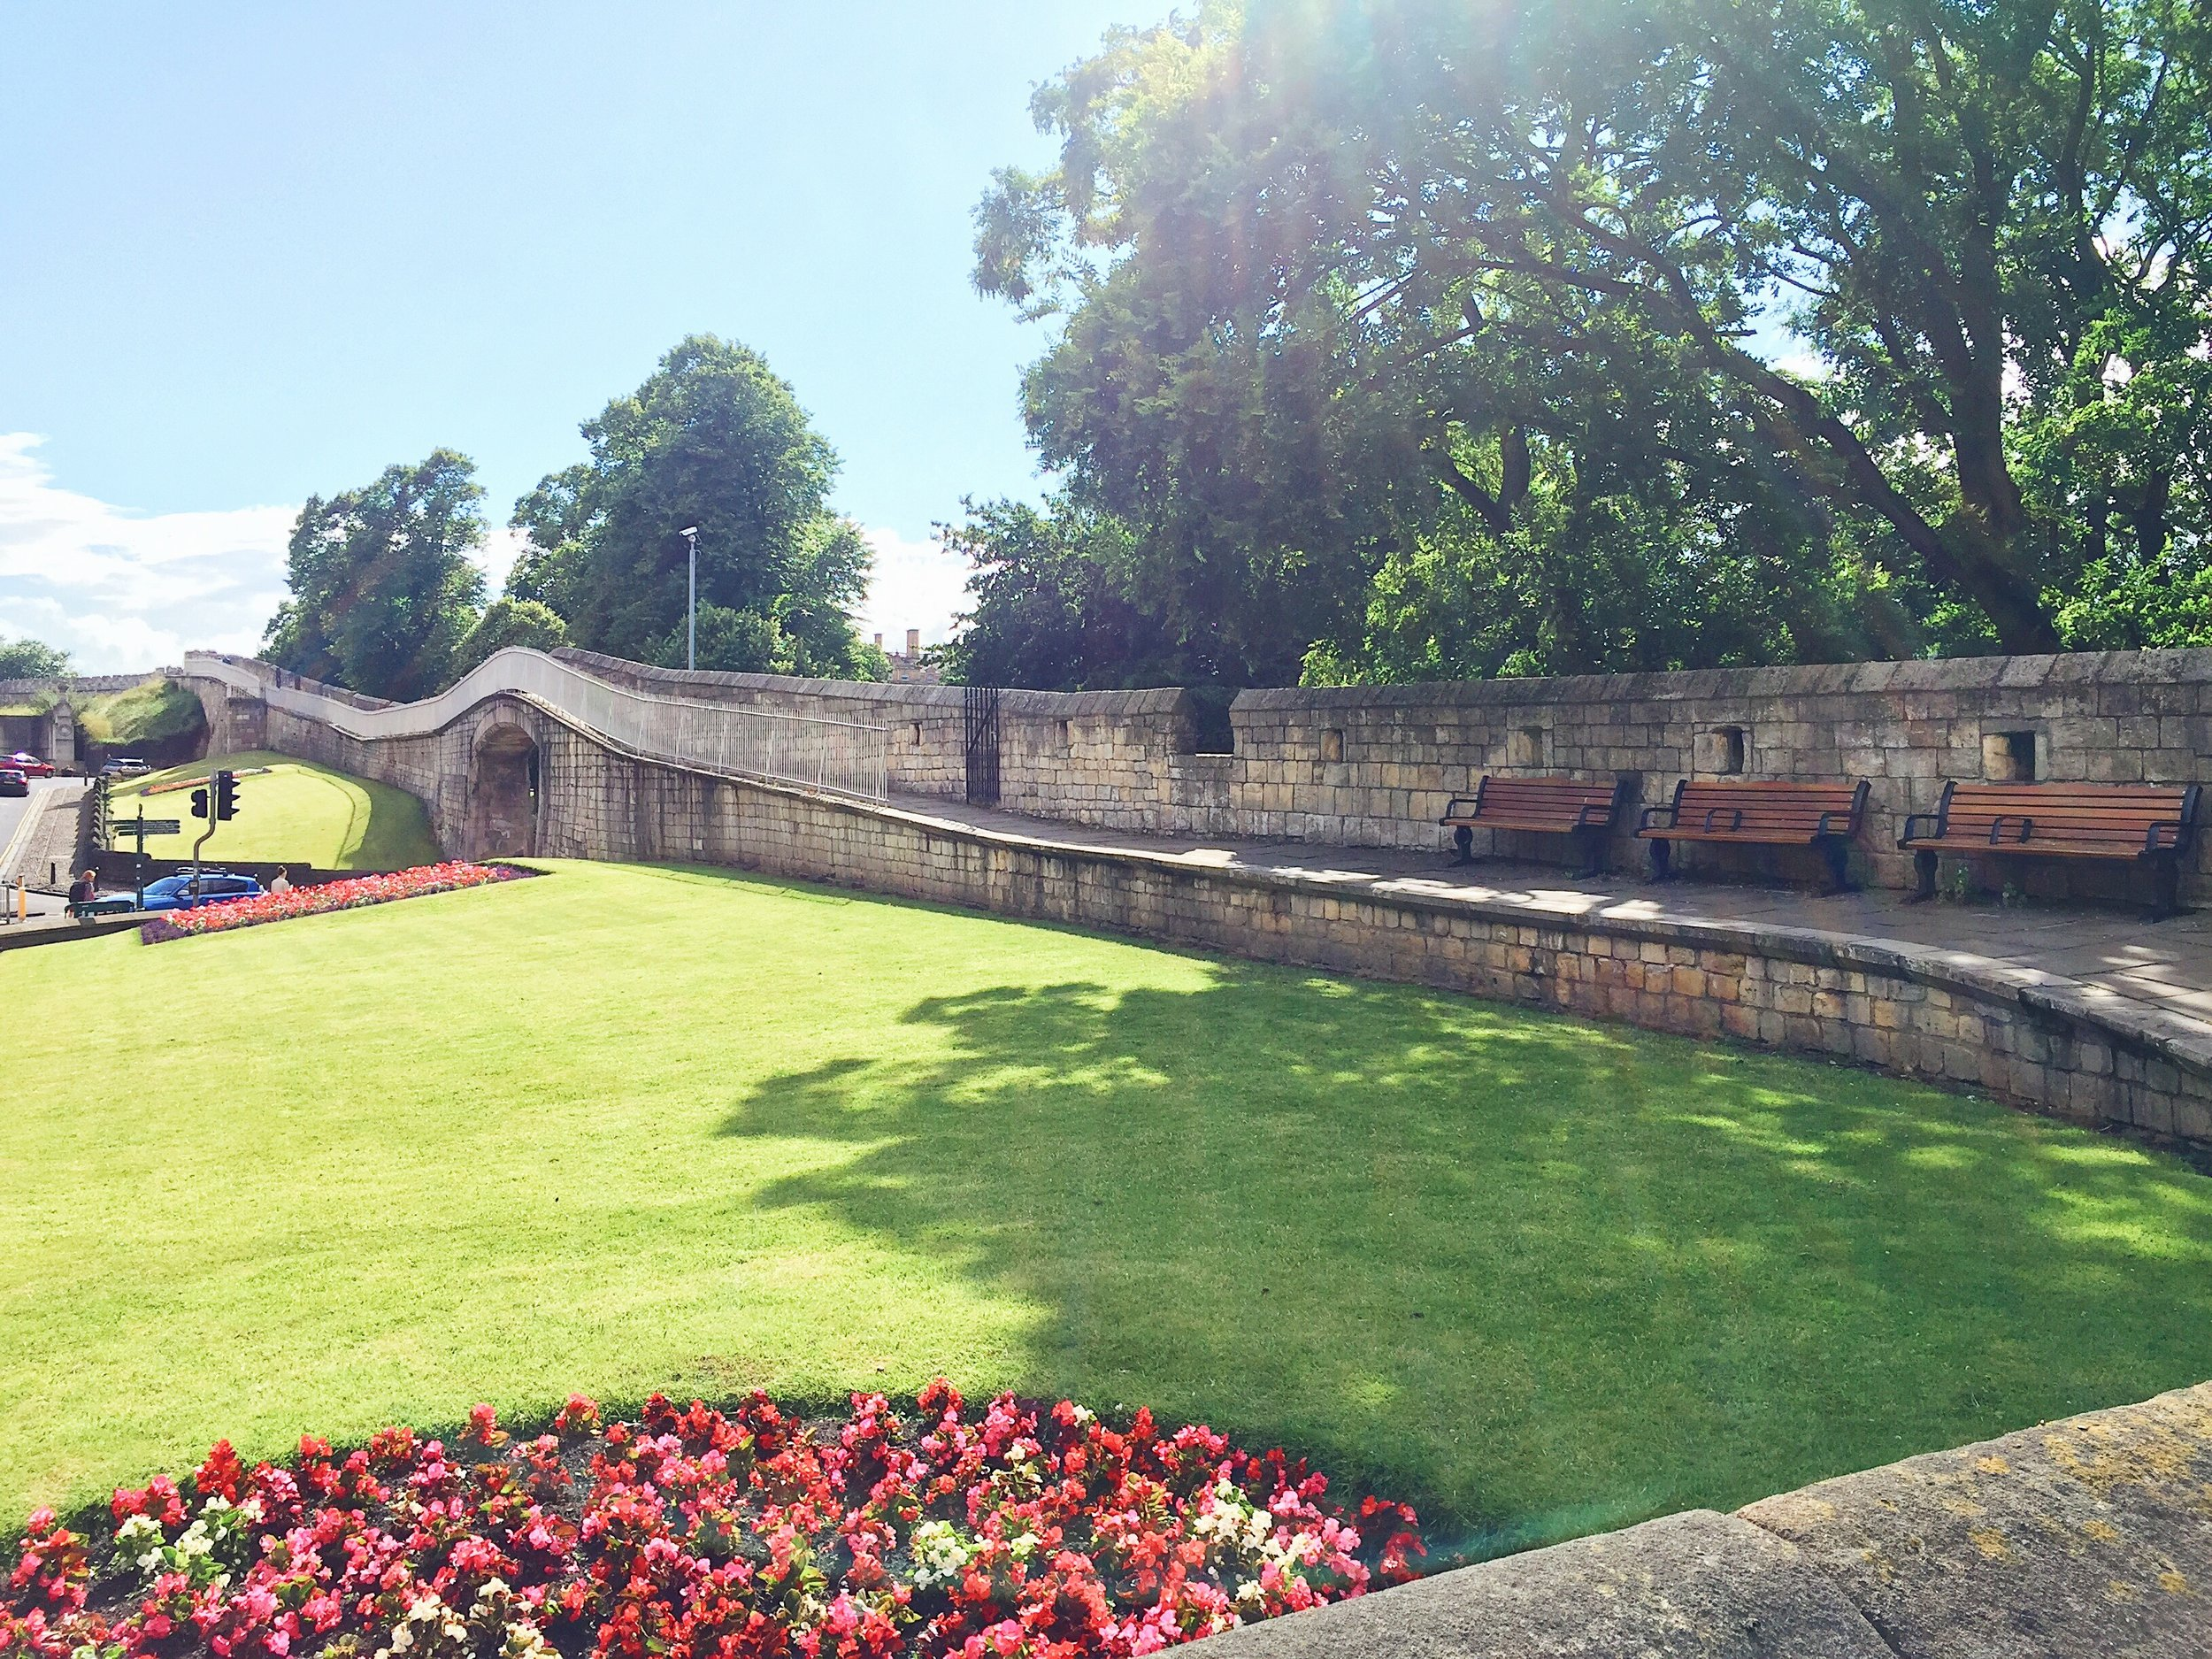 Part of the Roman Wall surrounding York City